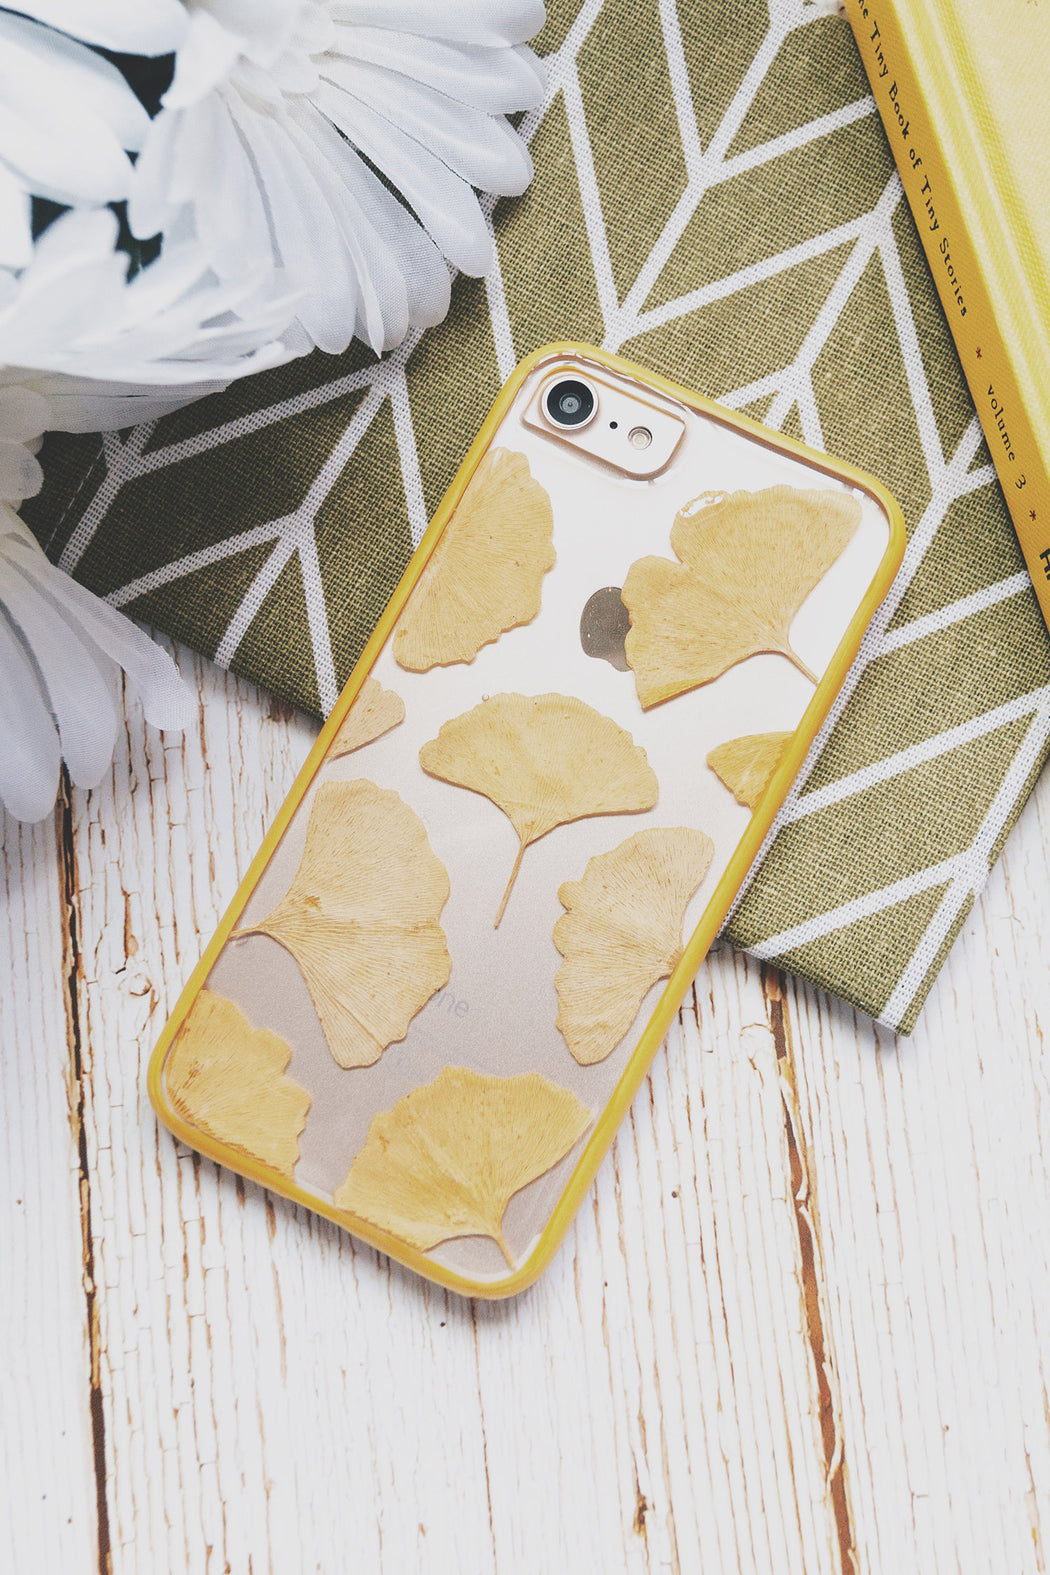 pressed Yellow ginkgo leaf flower cute protective floral iphone 7 8 bumper case everlasting floral neverland floralfy